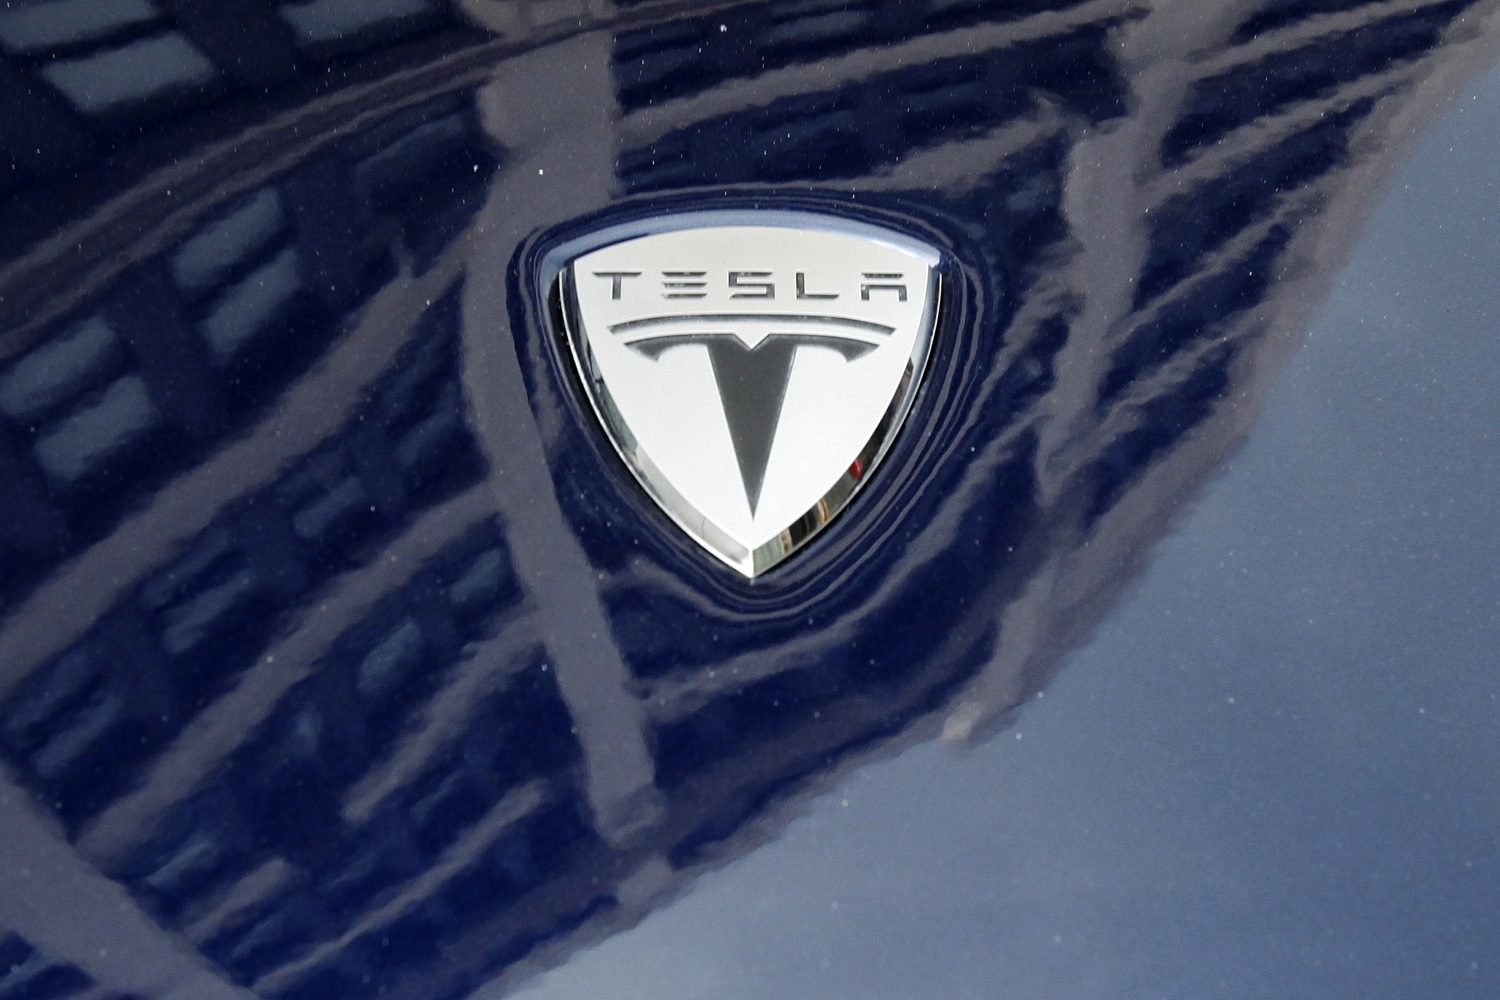 A logo of Tesla Motors on an electric car model is seen outside a showroom in New York on June 28, 2010.